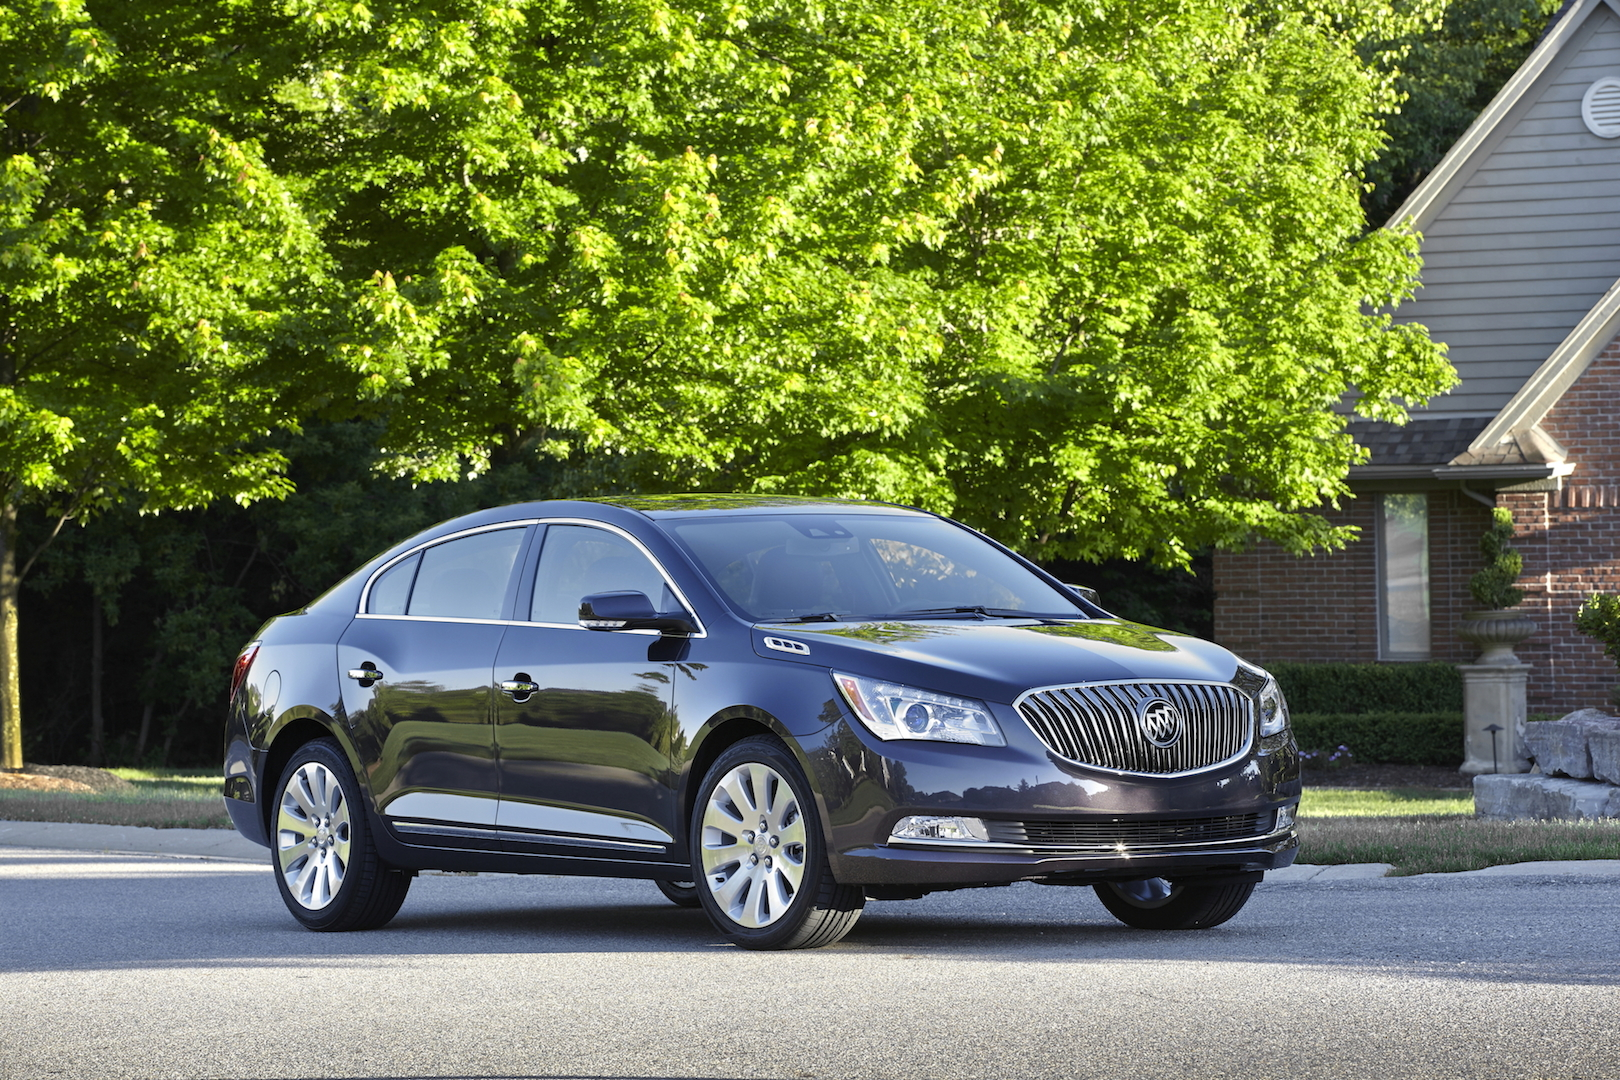 Future Buick Lineup To Arrive From Overseas?